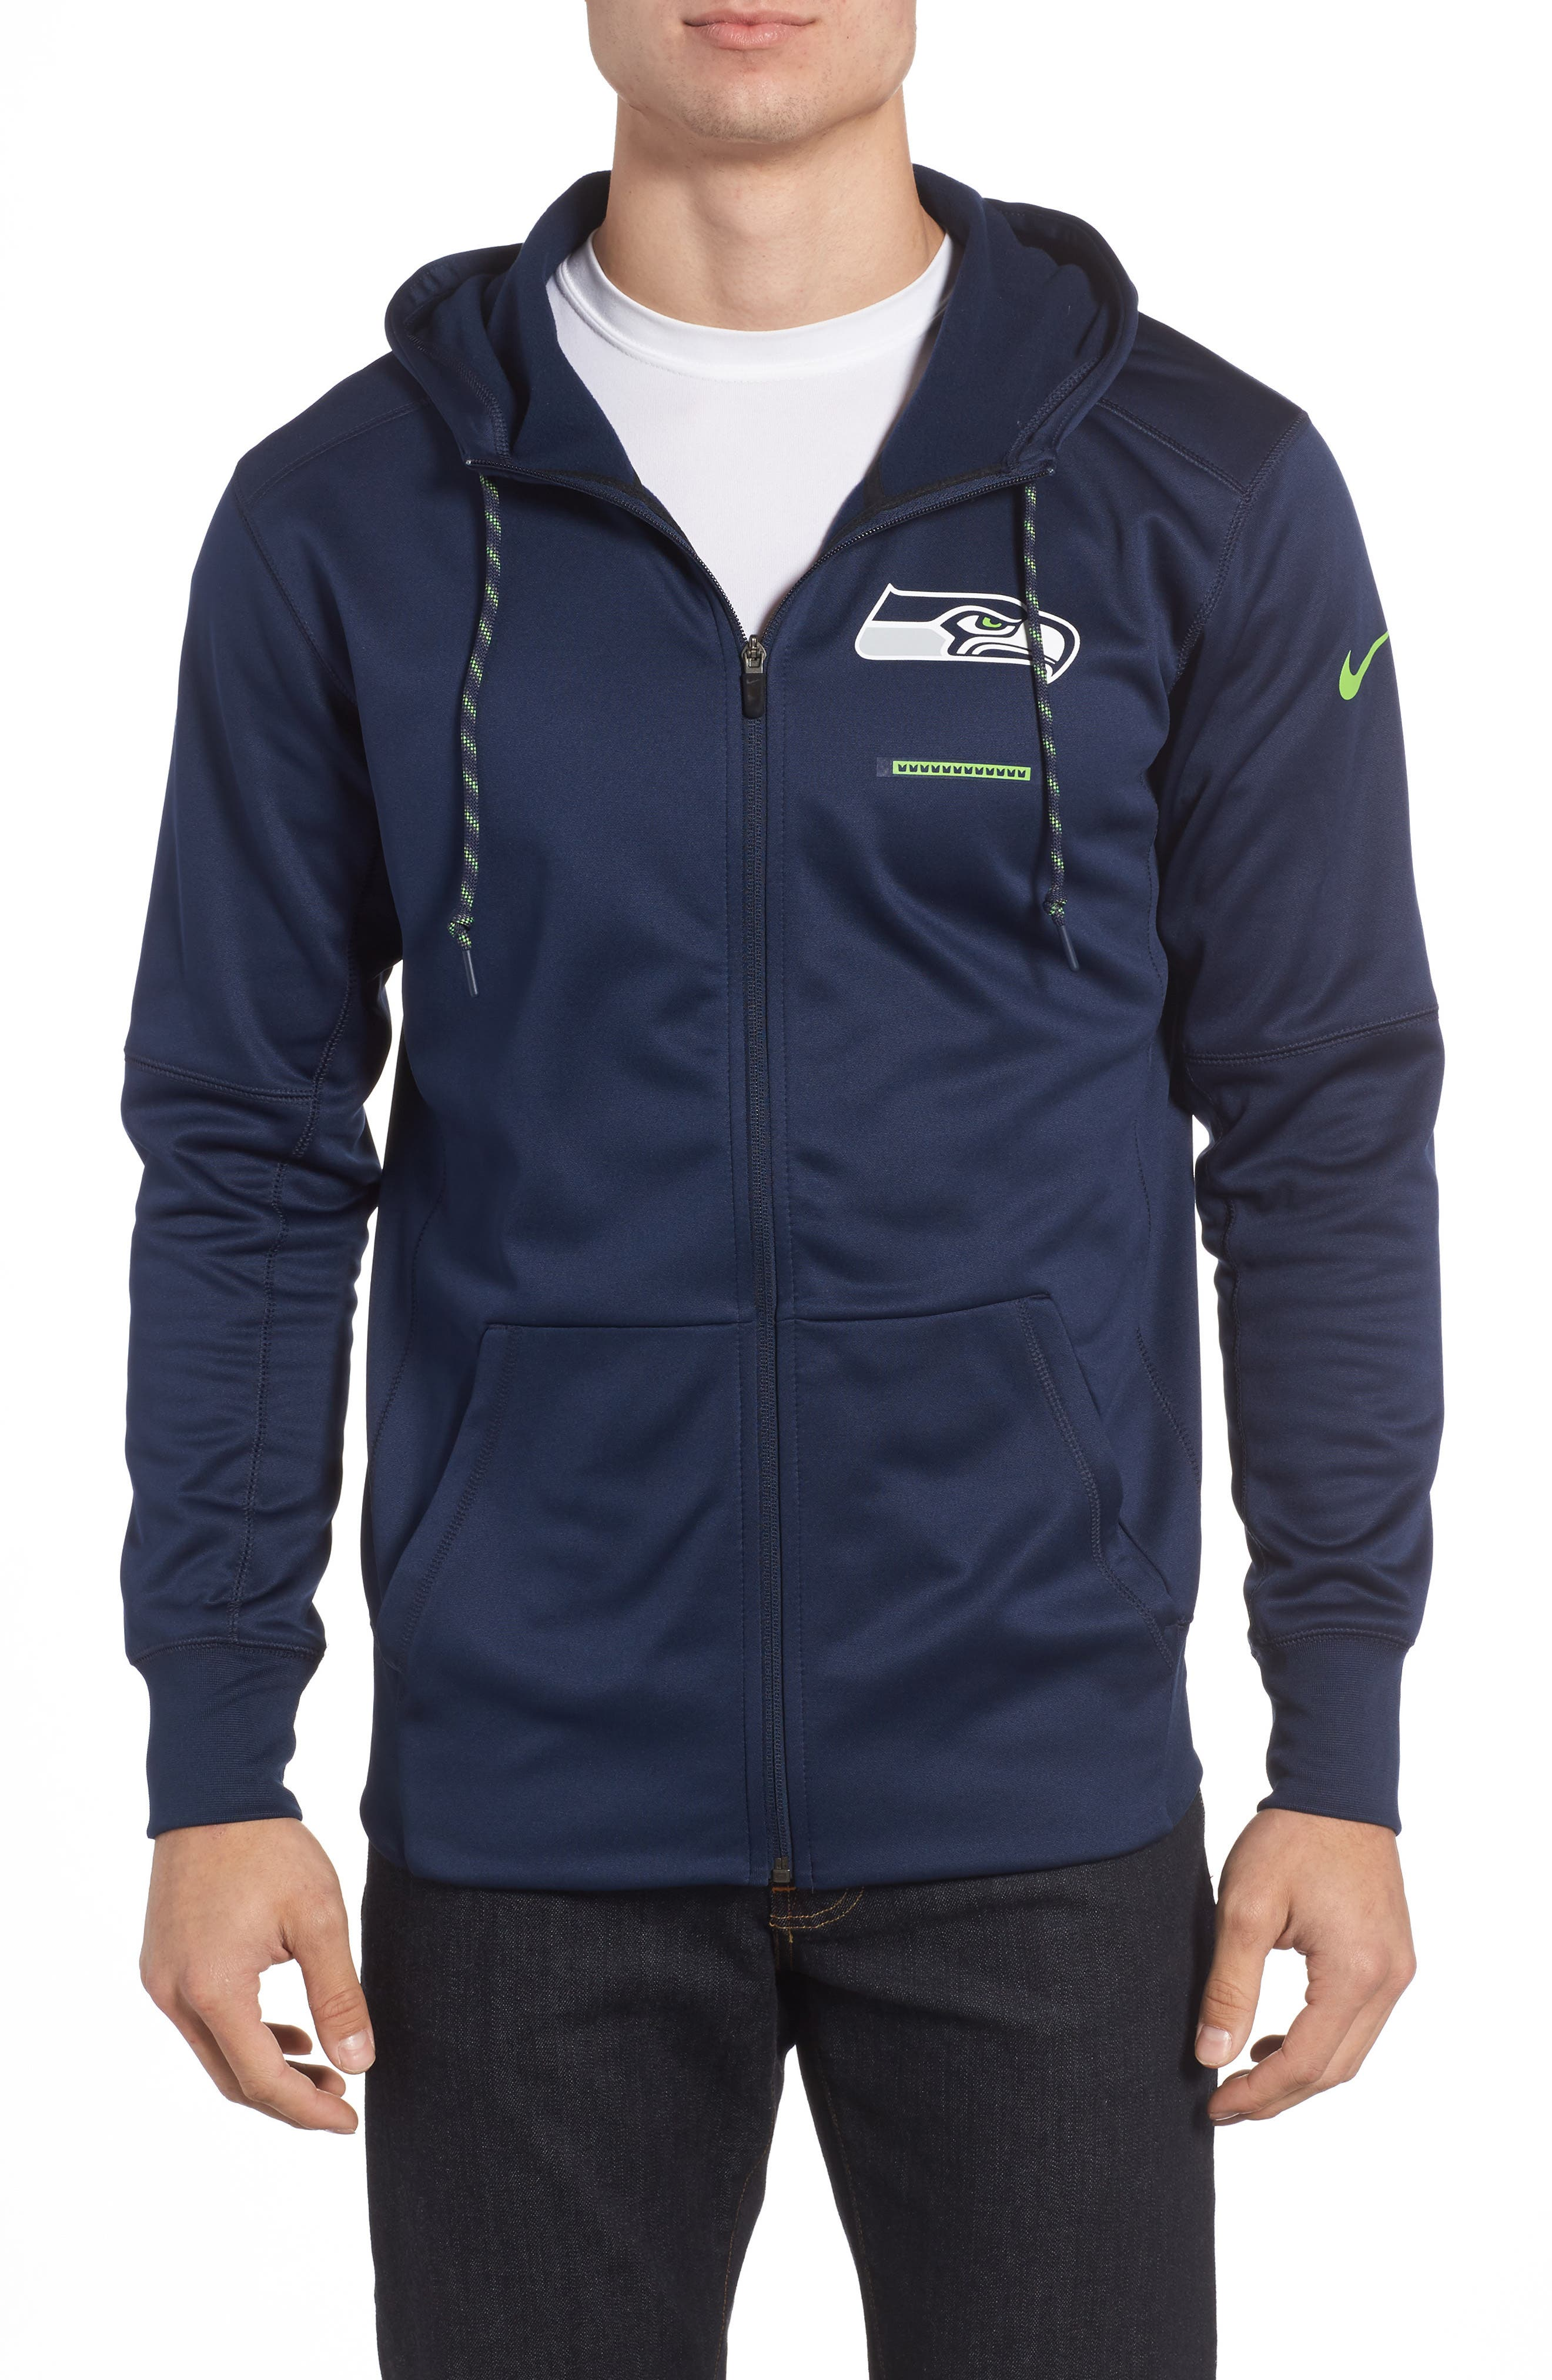 Therma-FIT NFL Graphic Zip Hoodie,                         Main,                         color, Seahawks